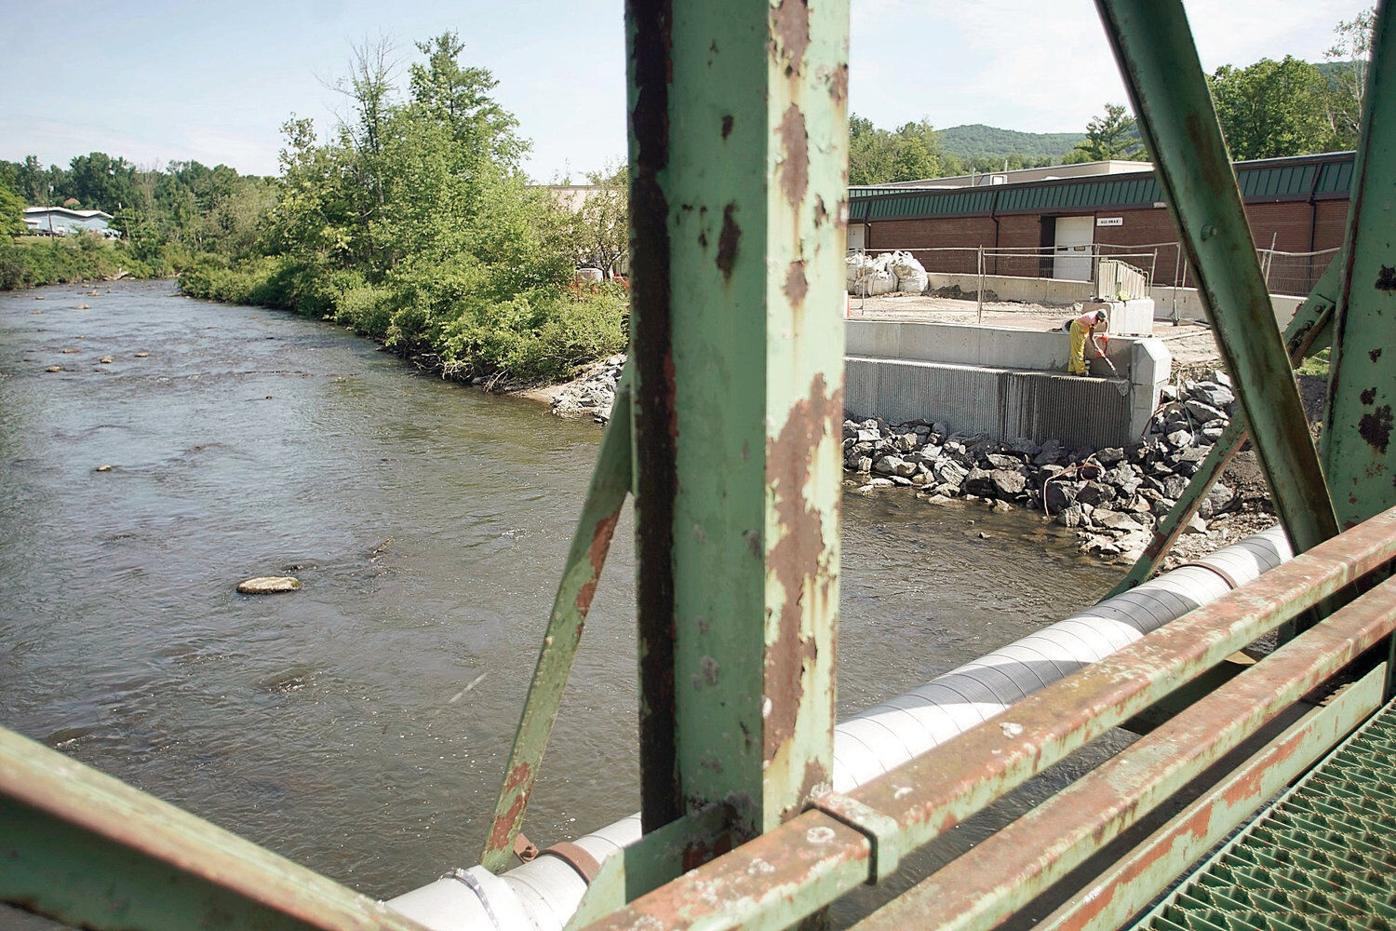 Bridge replacement work begins on vital trucking route between Lee, Lenox Dale